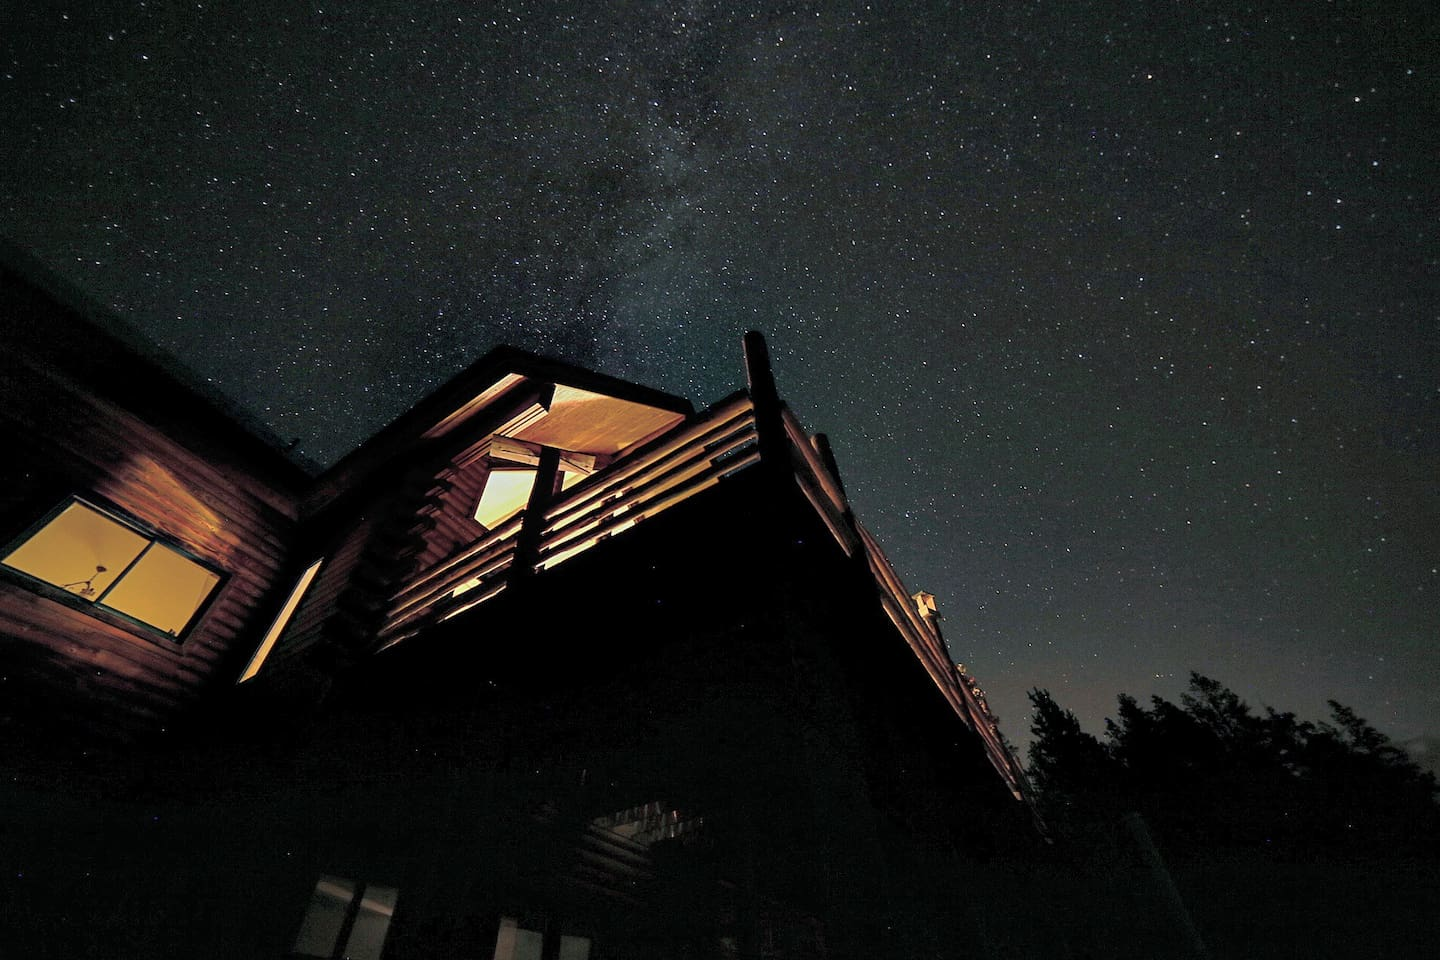 Milkyway and the house. Taken by one of our guests. Thanks Mike C!